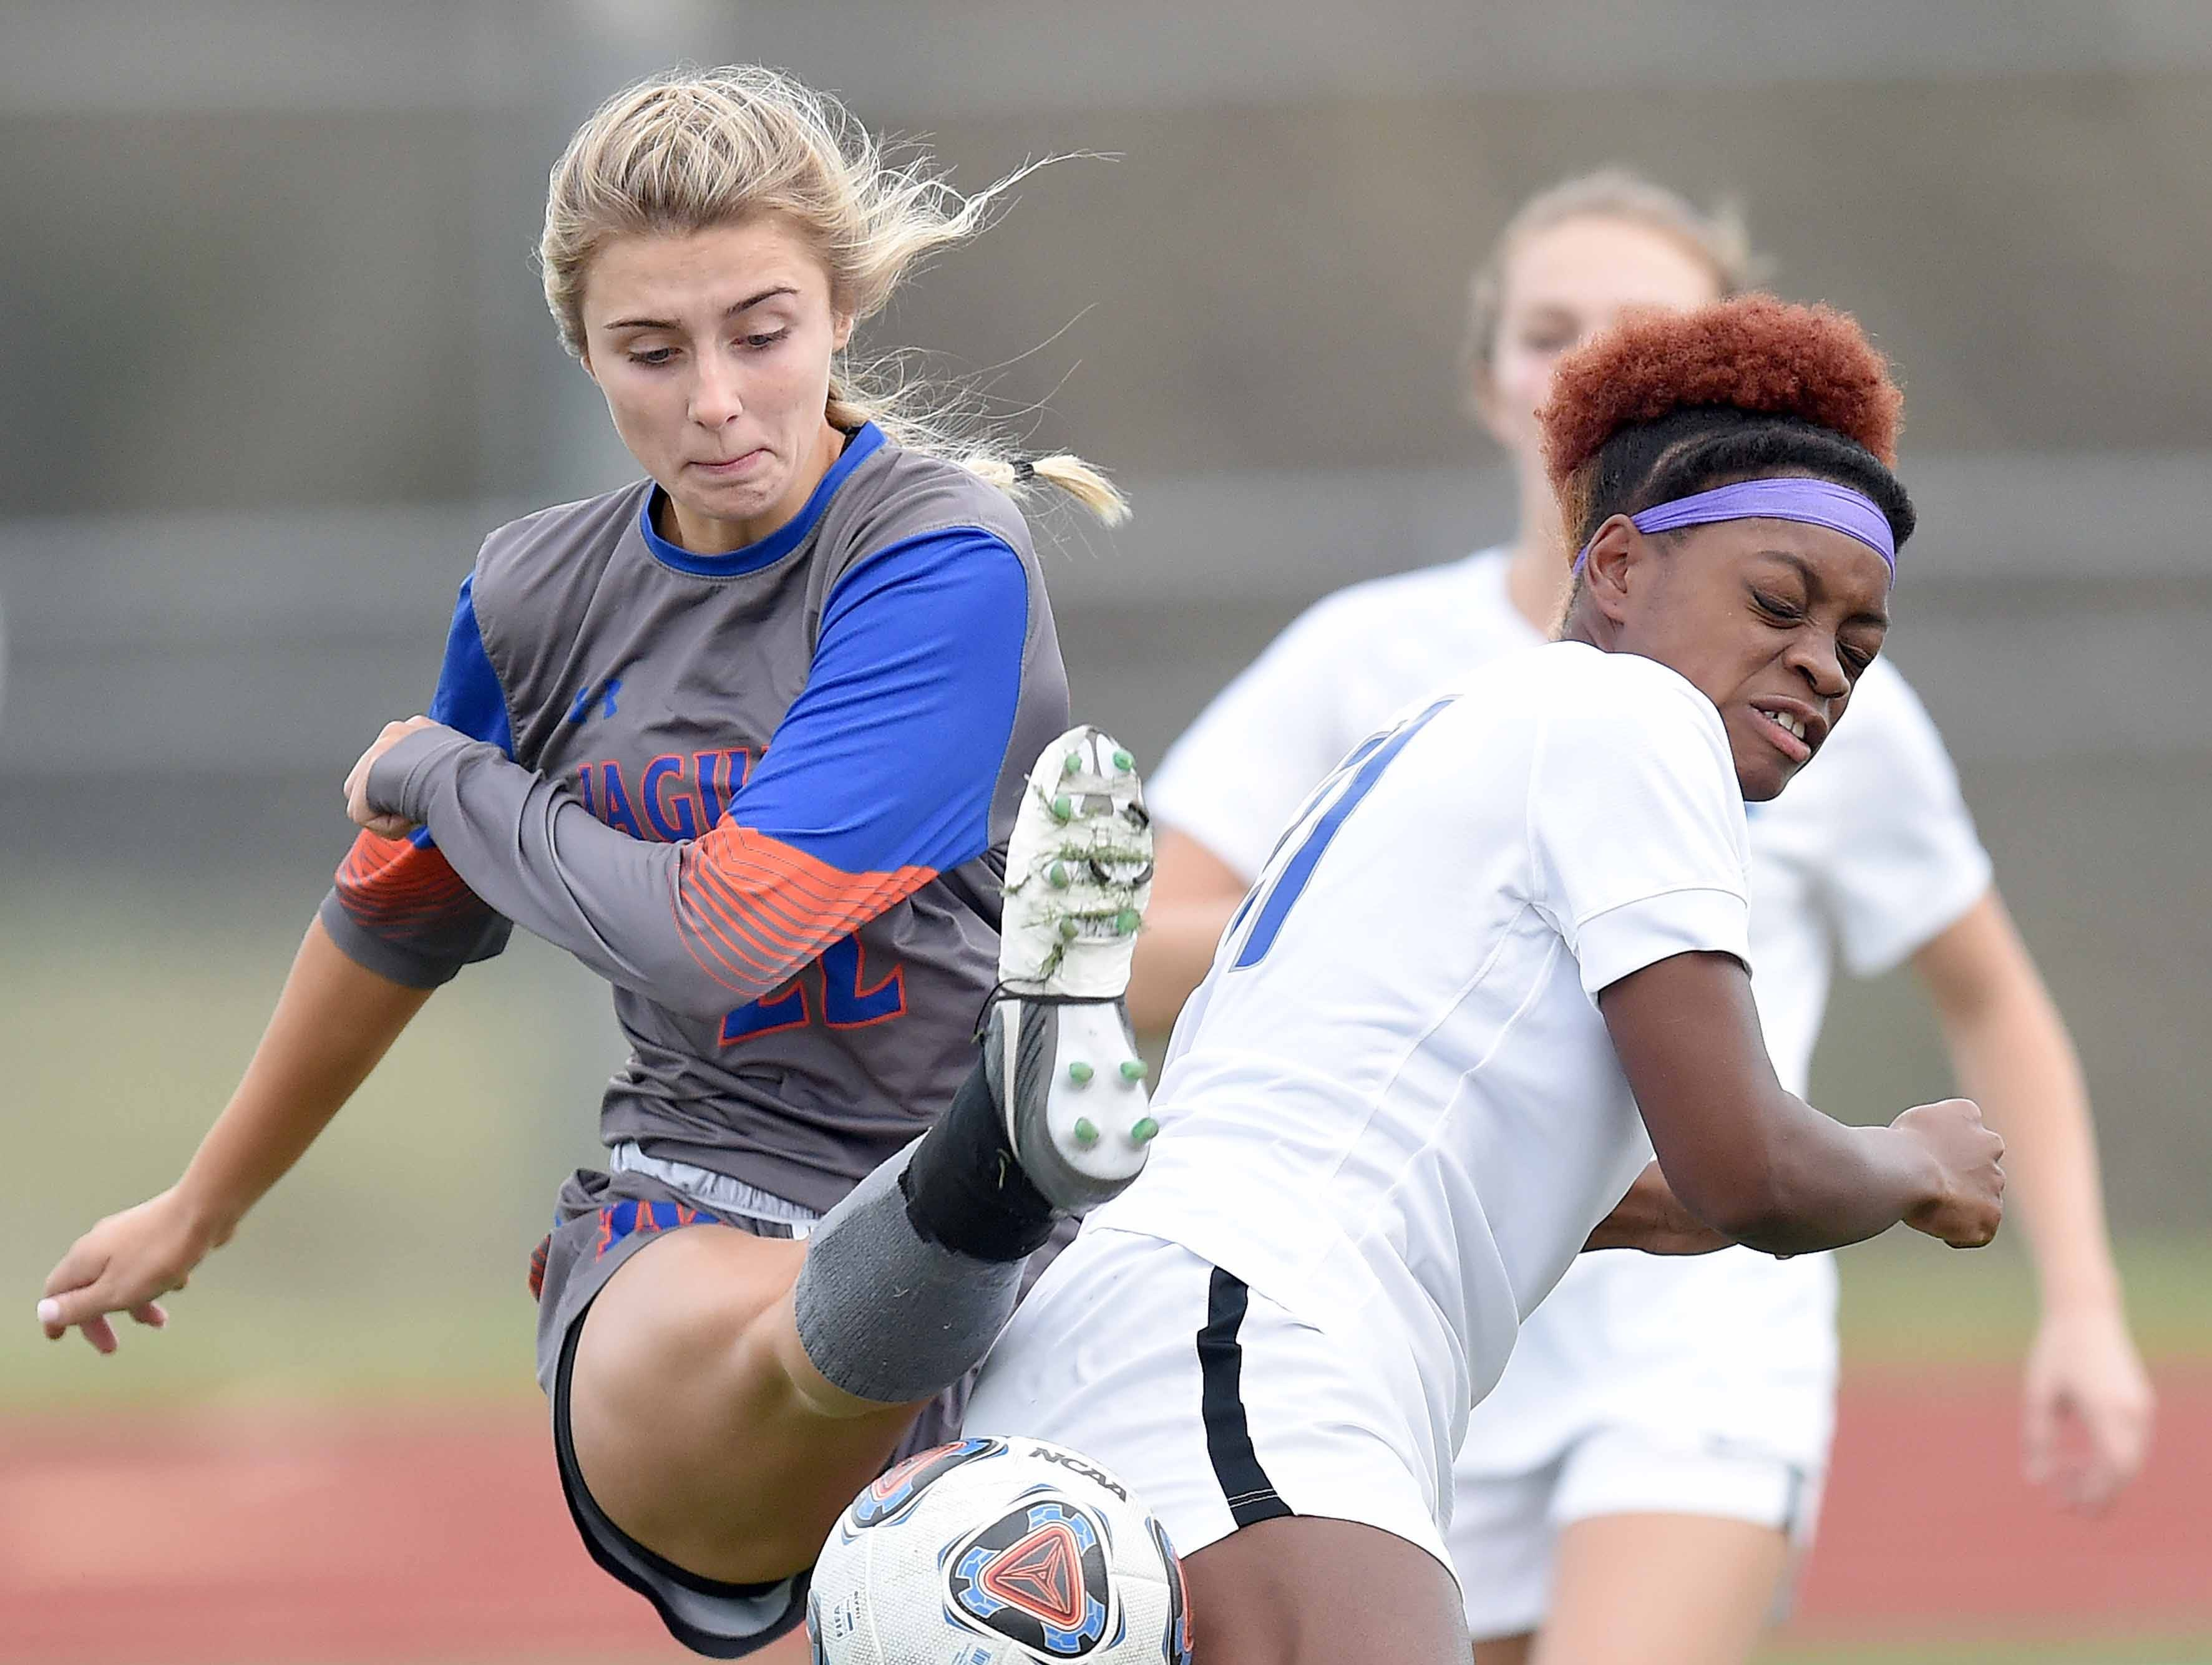 Madison Central's Cara Dale Palmer (22) blocks the pass to Ocean Springs' Loren Winters (right) in the Class 6A state championship in the MHSAA BlueCross Blue Shield of Mississippi Soccer Classic on Saturday, February 9, 2019, at Ridgeland High School in Ridgeland, Miss.